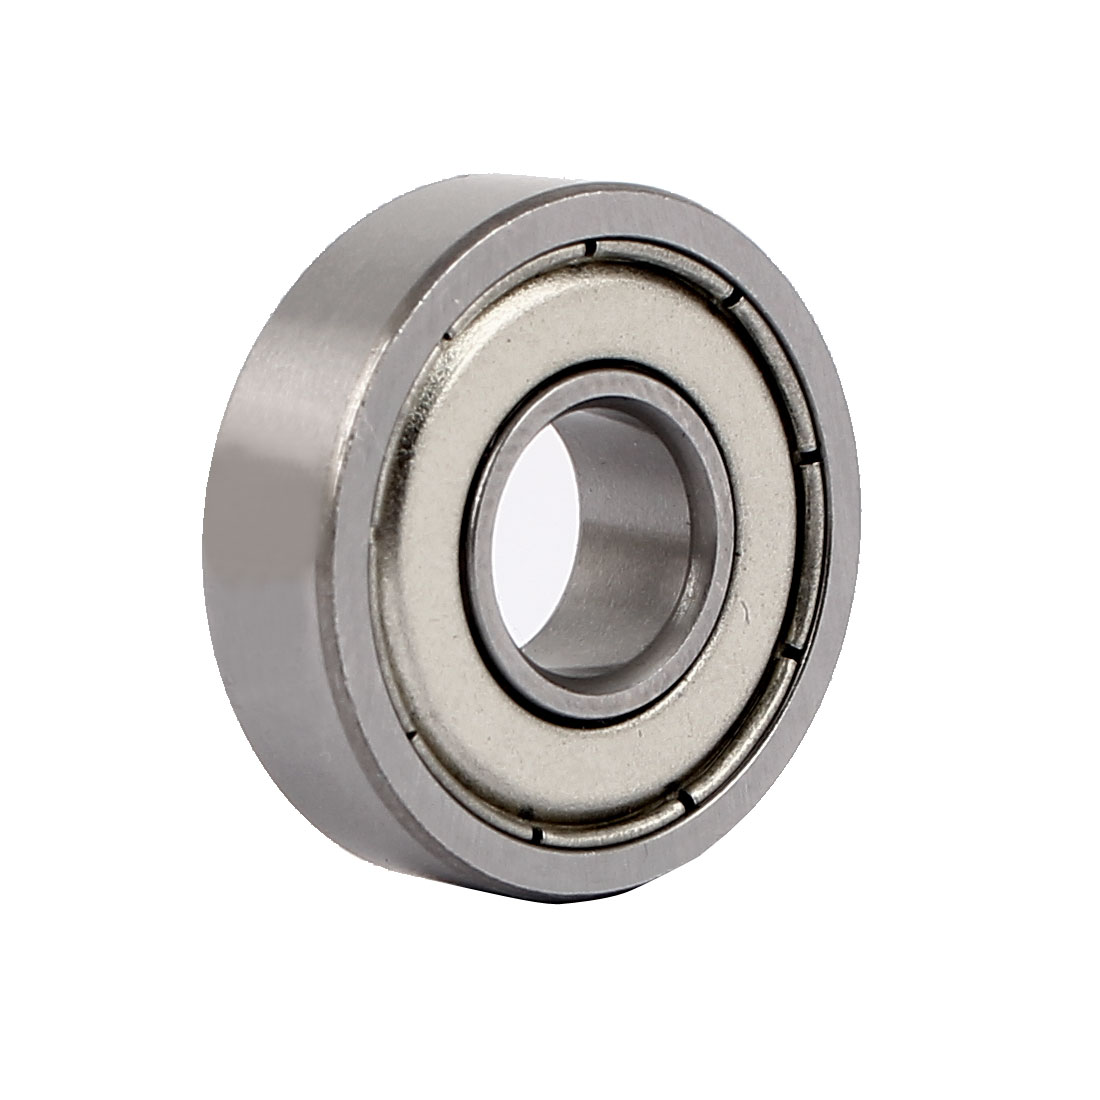 ZZ609 Shielded Deep Groove Flange Ball Bearing 24mm OD 9mm Bore Diameter